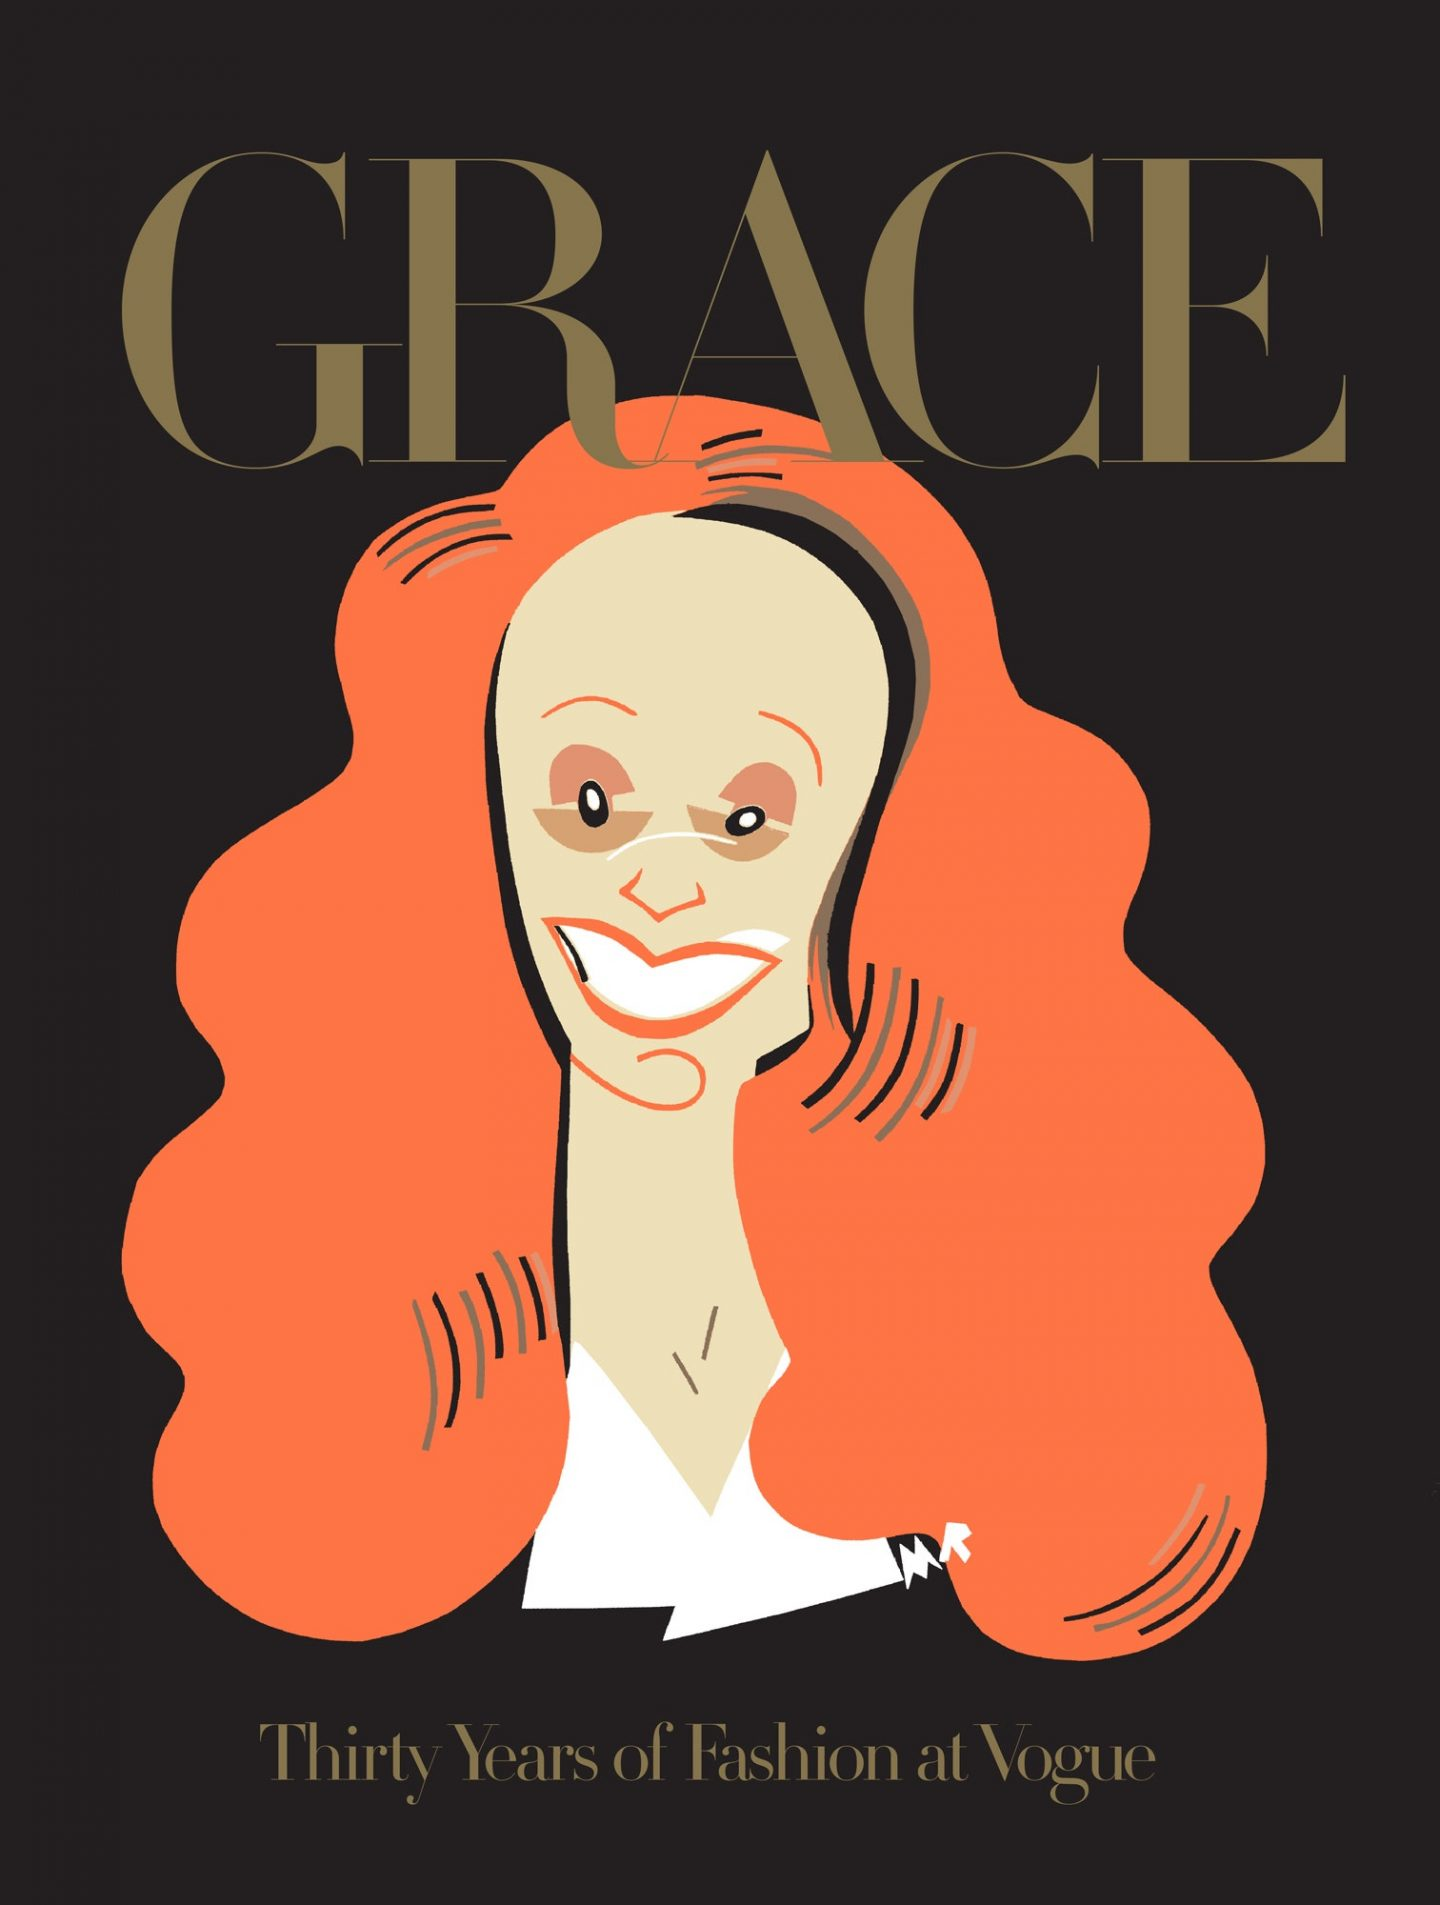 grace-coddington-30-years-of-fashion-at-vogue גרייס קודינגטון ספר